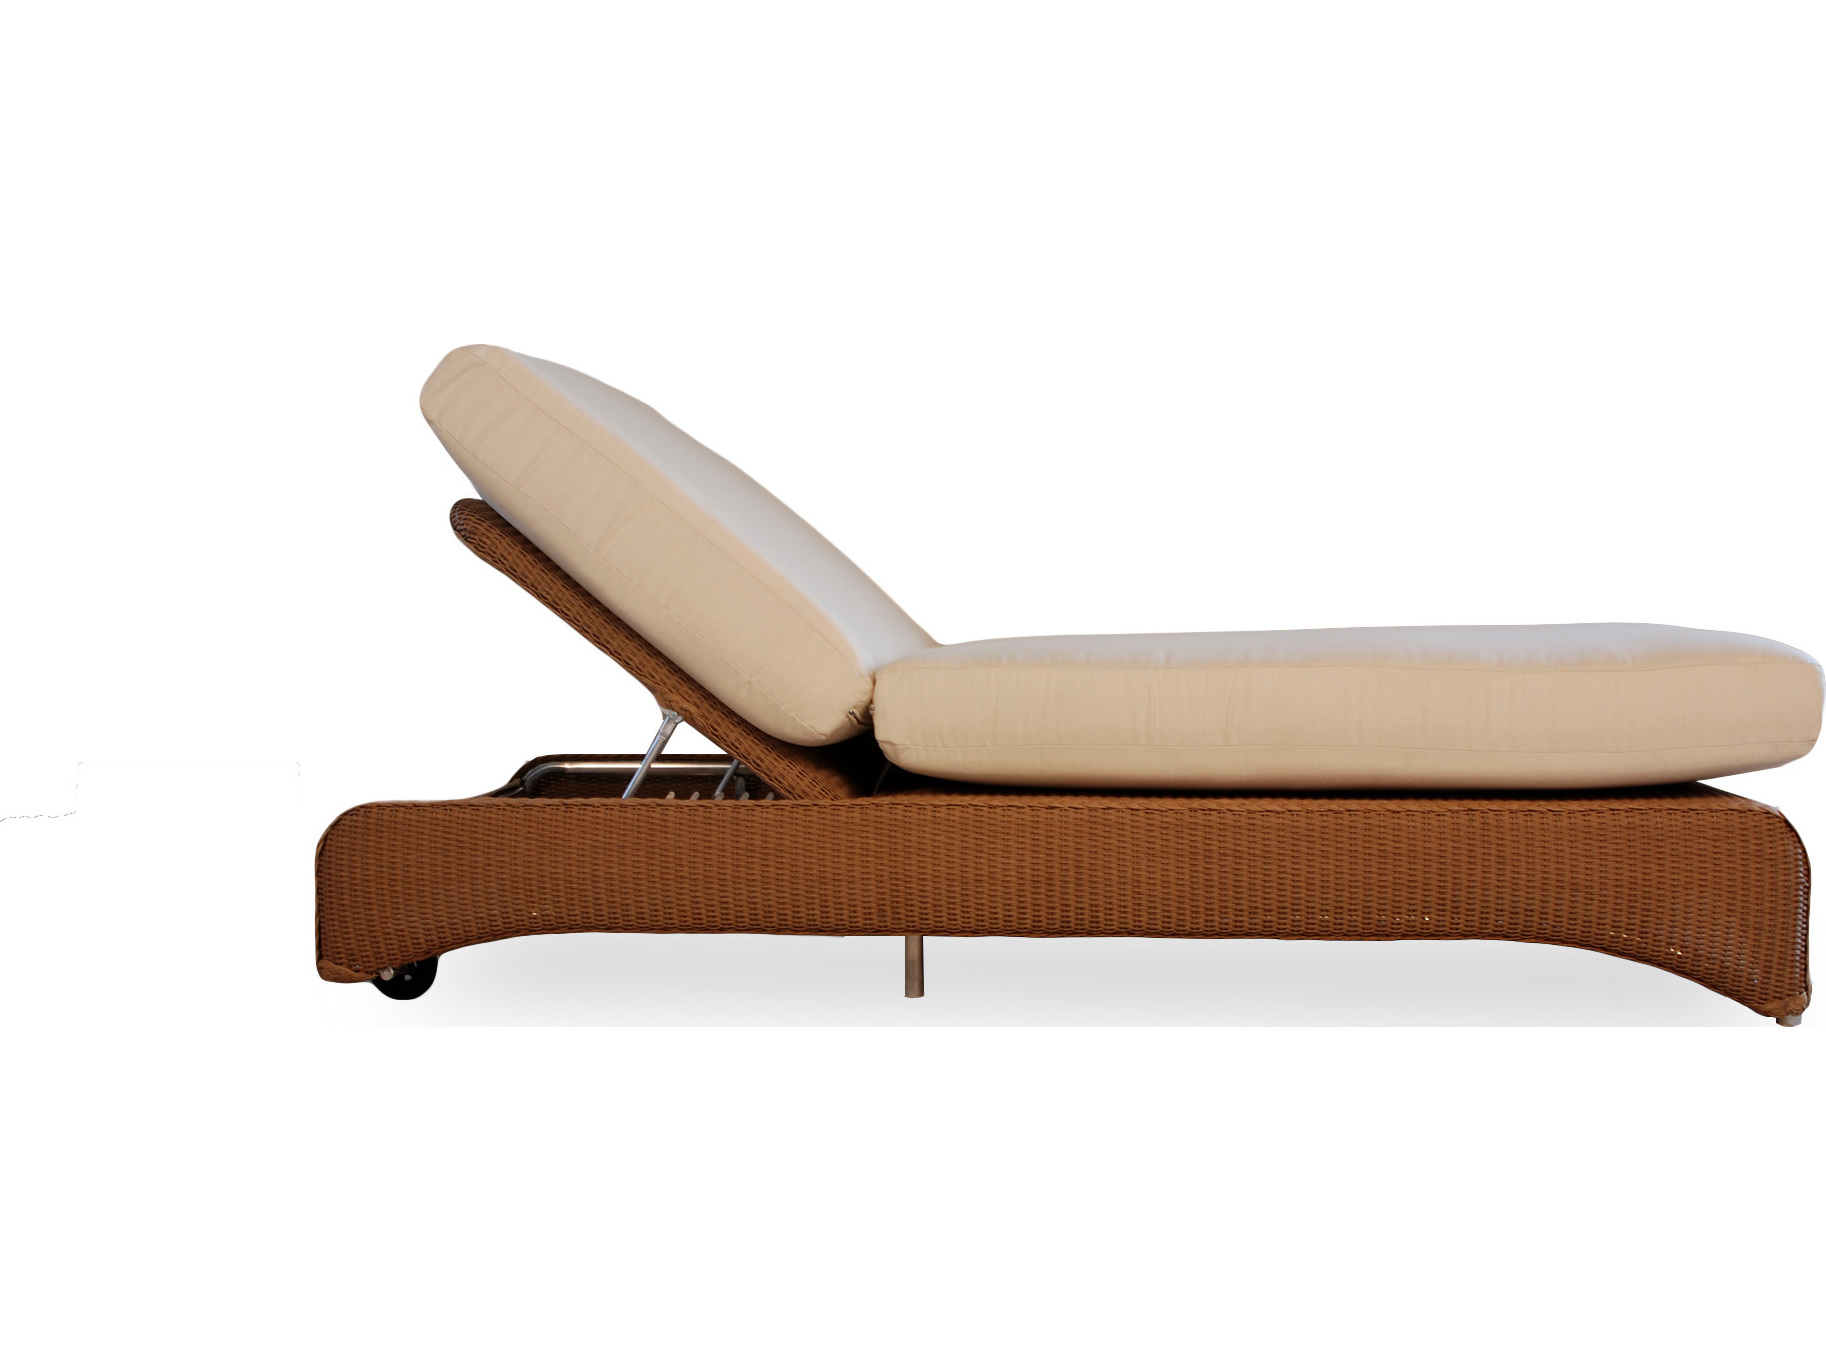 Lloyd flanders wicker double pool chaise lf6040 for Chaise lounge accessories